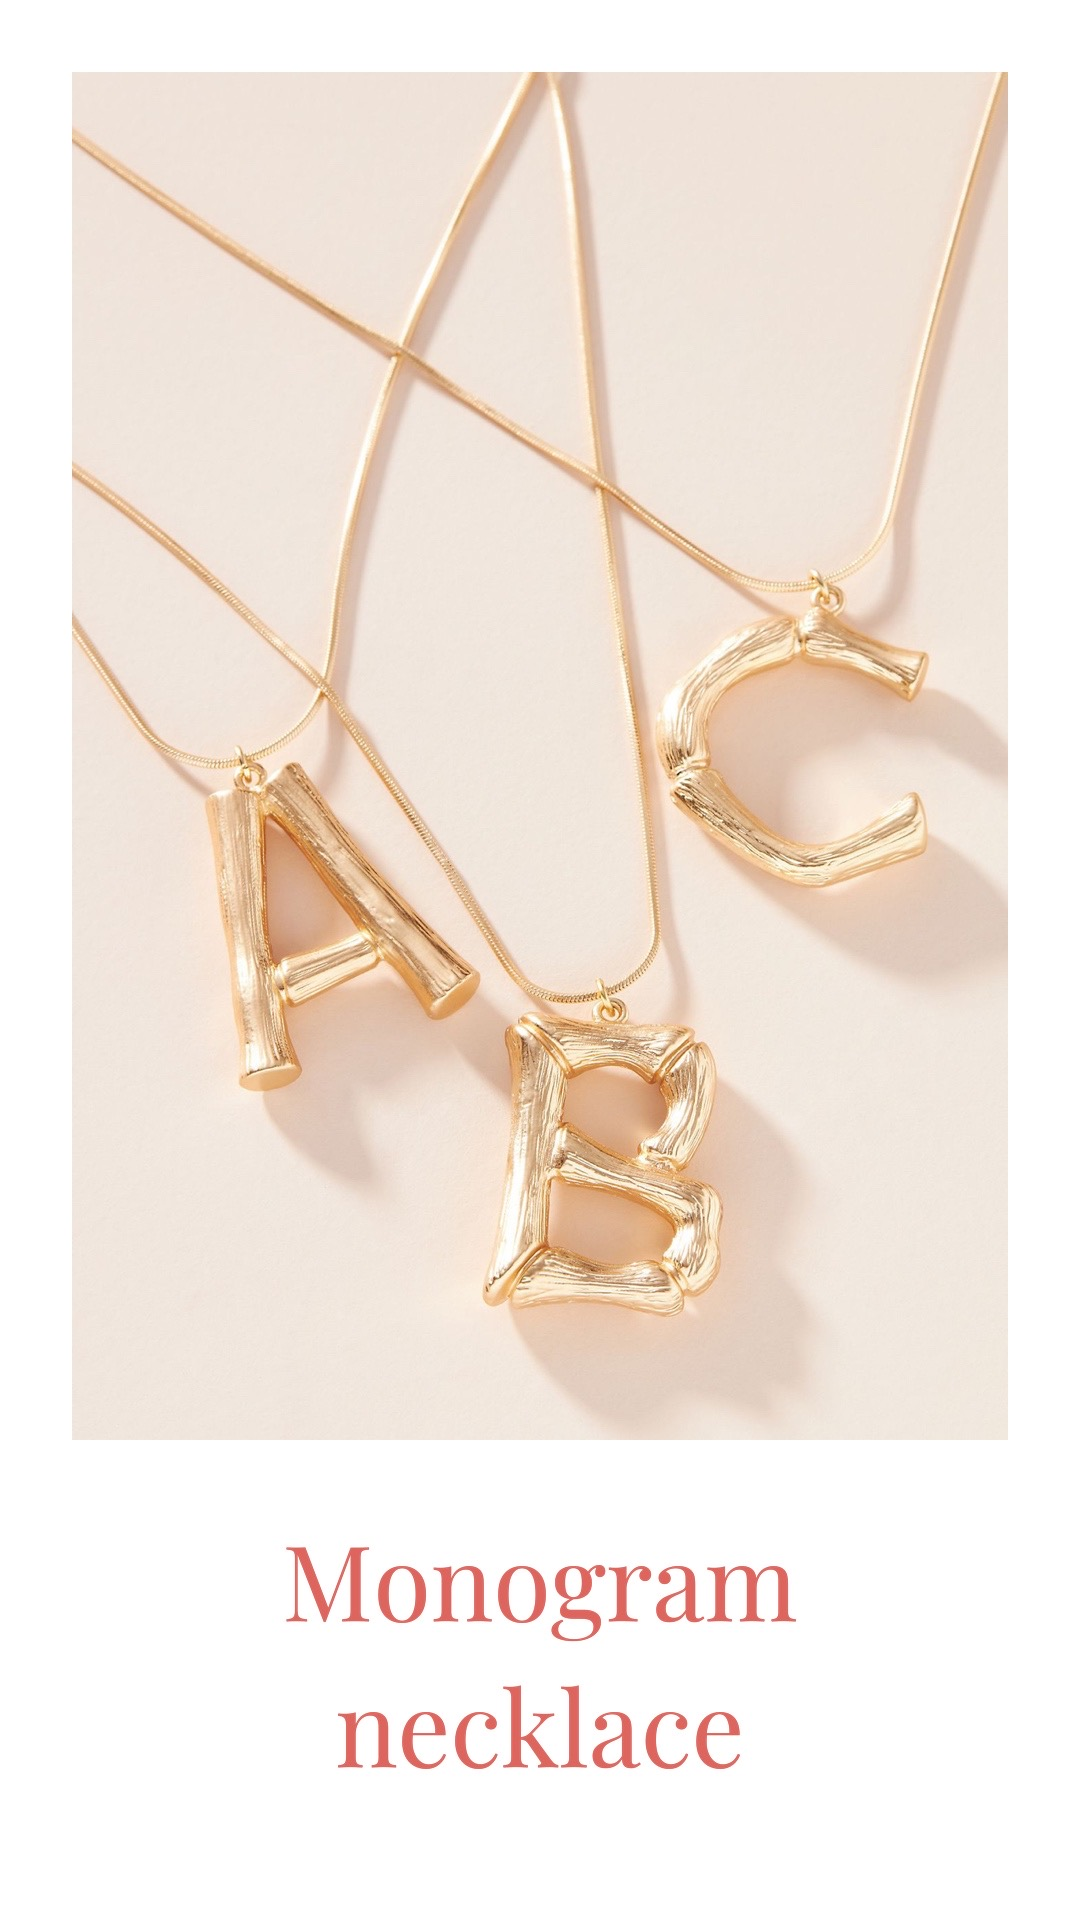 Anthropologie bamboo monogram necklace